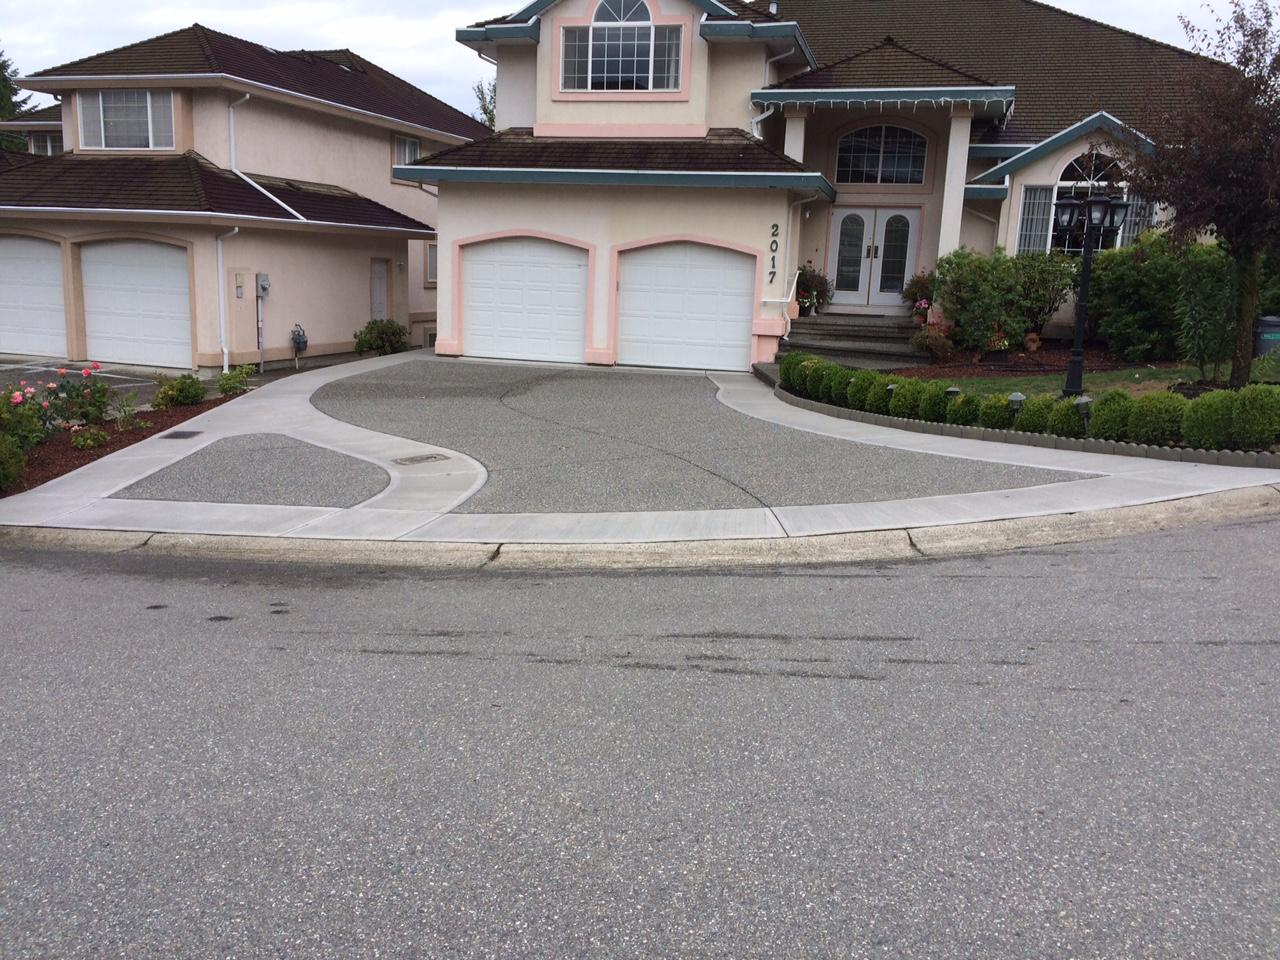 broomed and exposed aggregate concrete driveawy